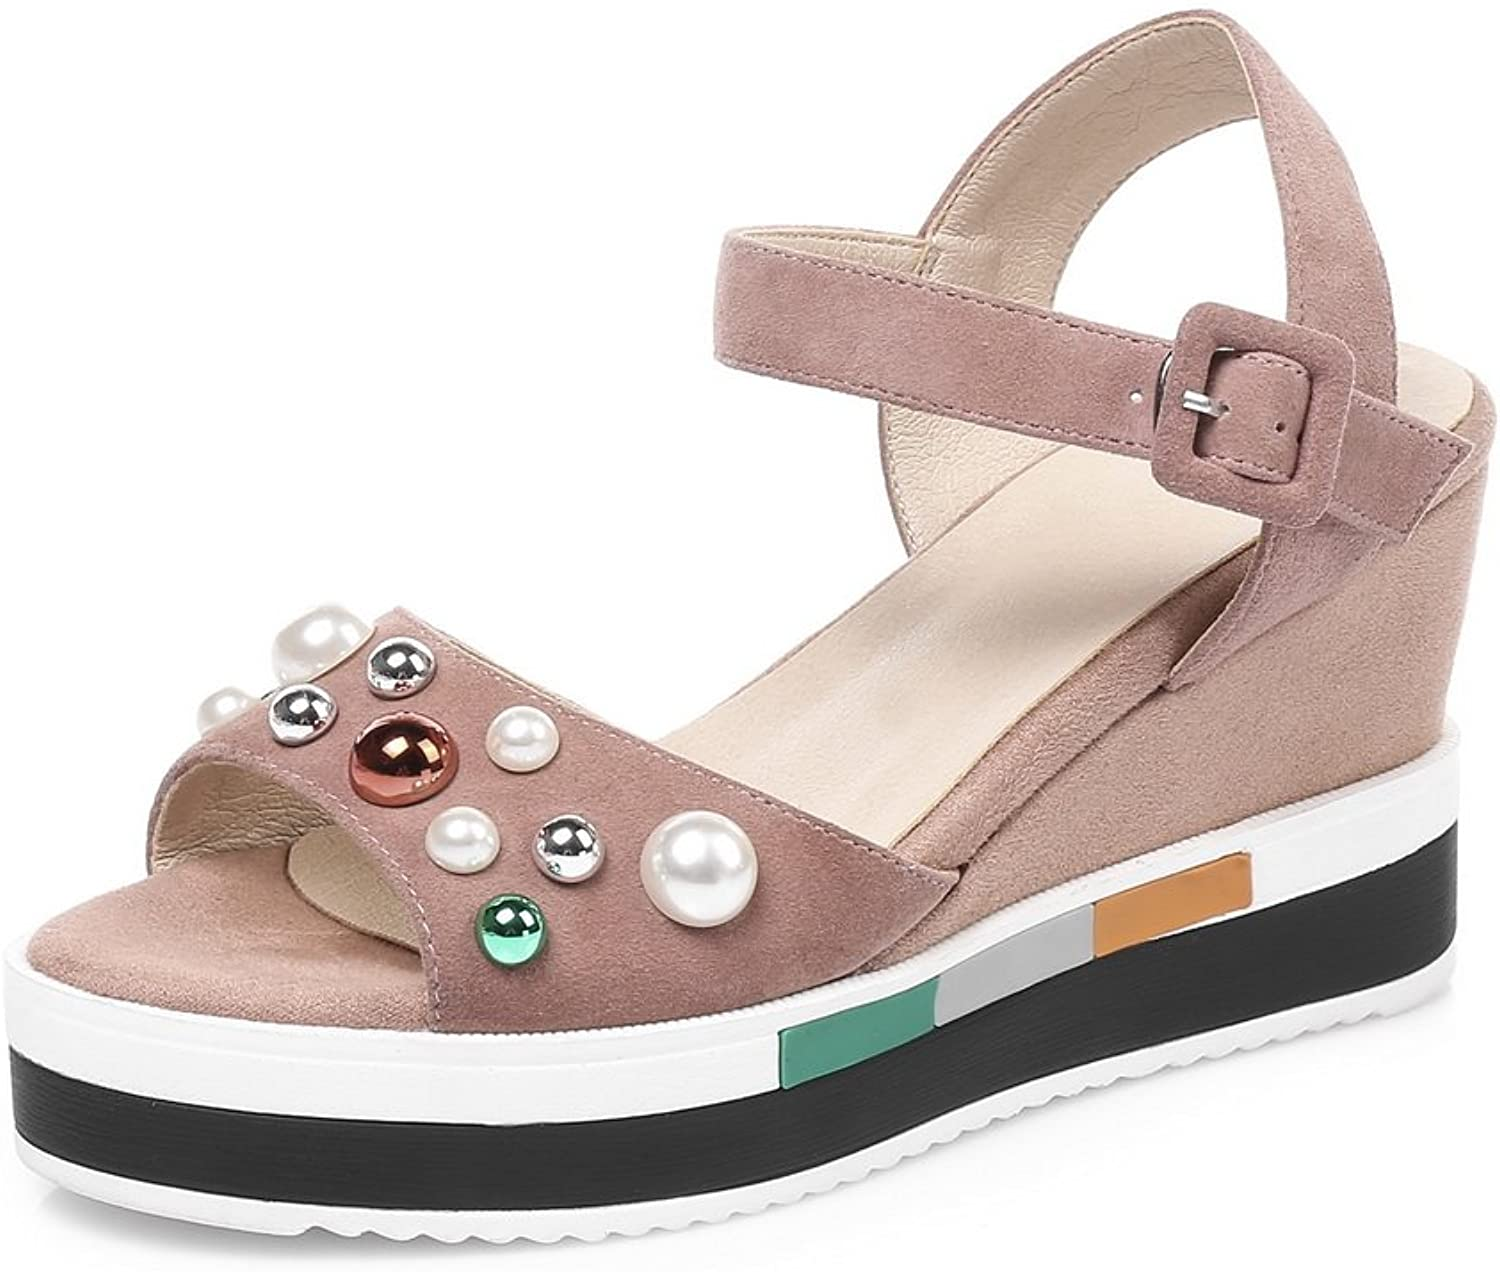 AN Womens Non-Marking Studded Cold Lining Urethane Platforms Sandals DIU00890